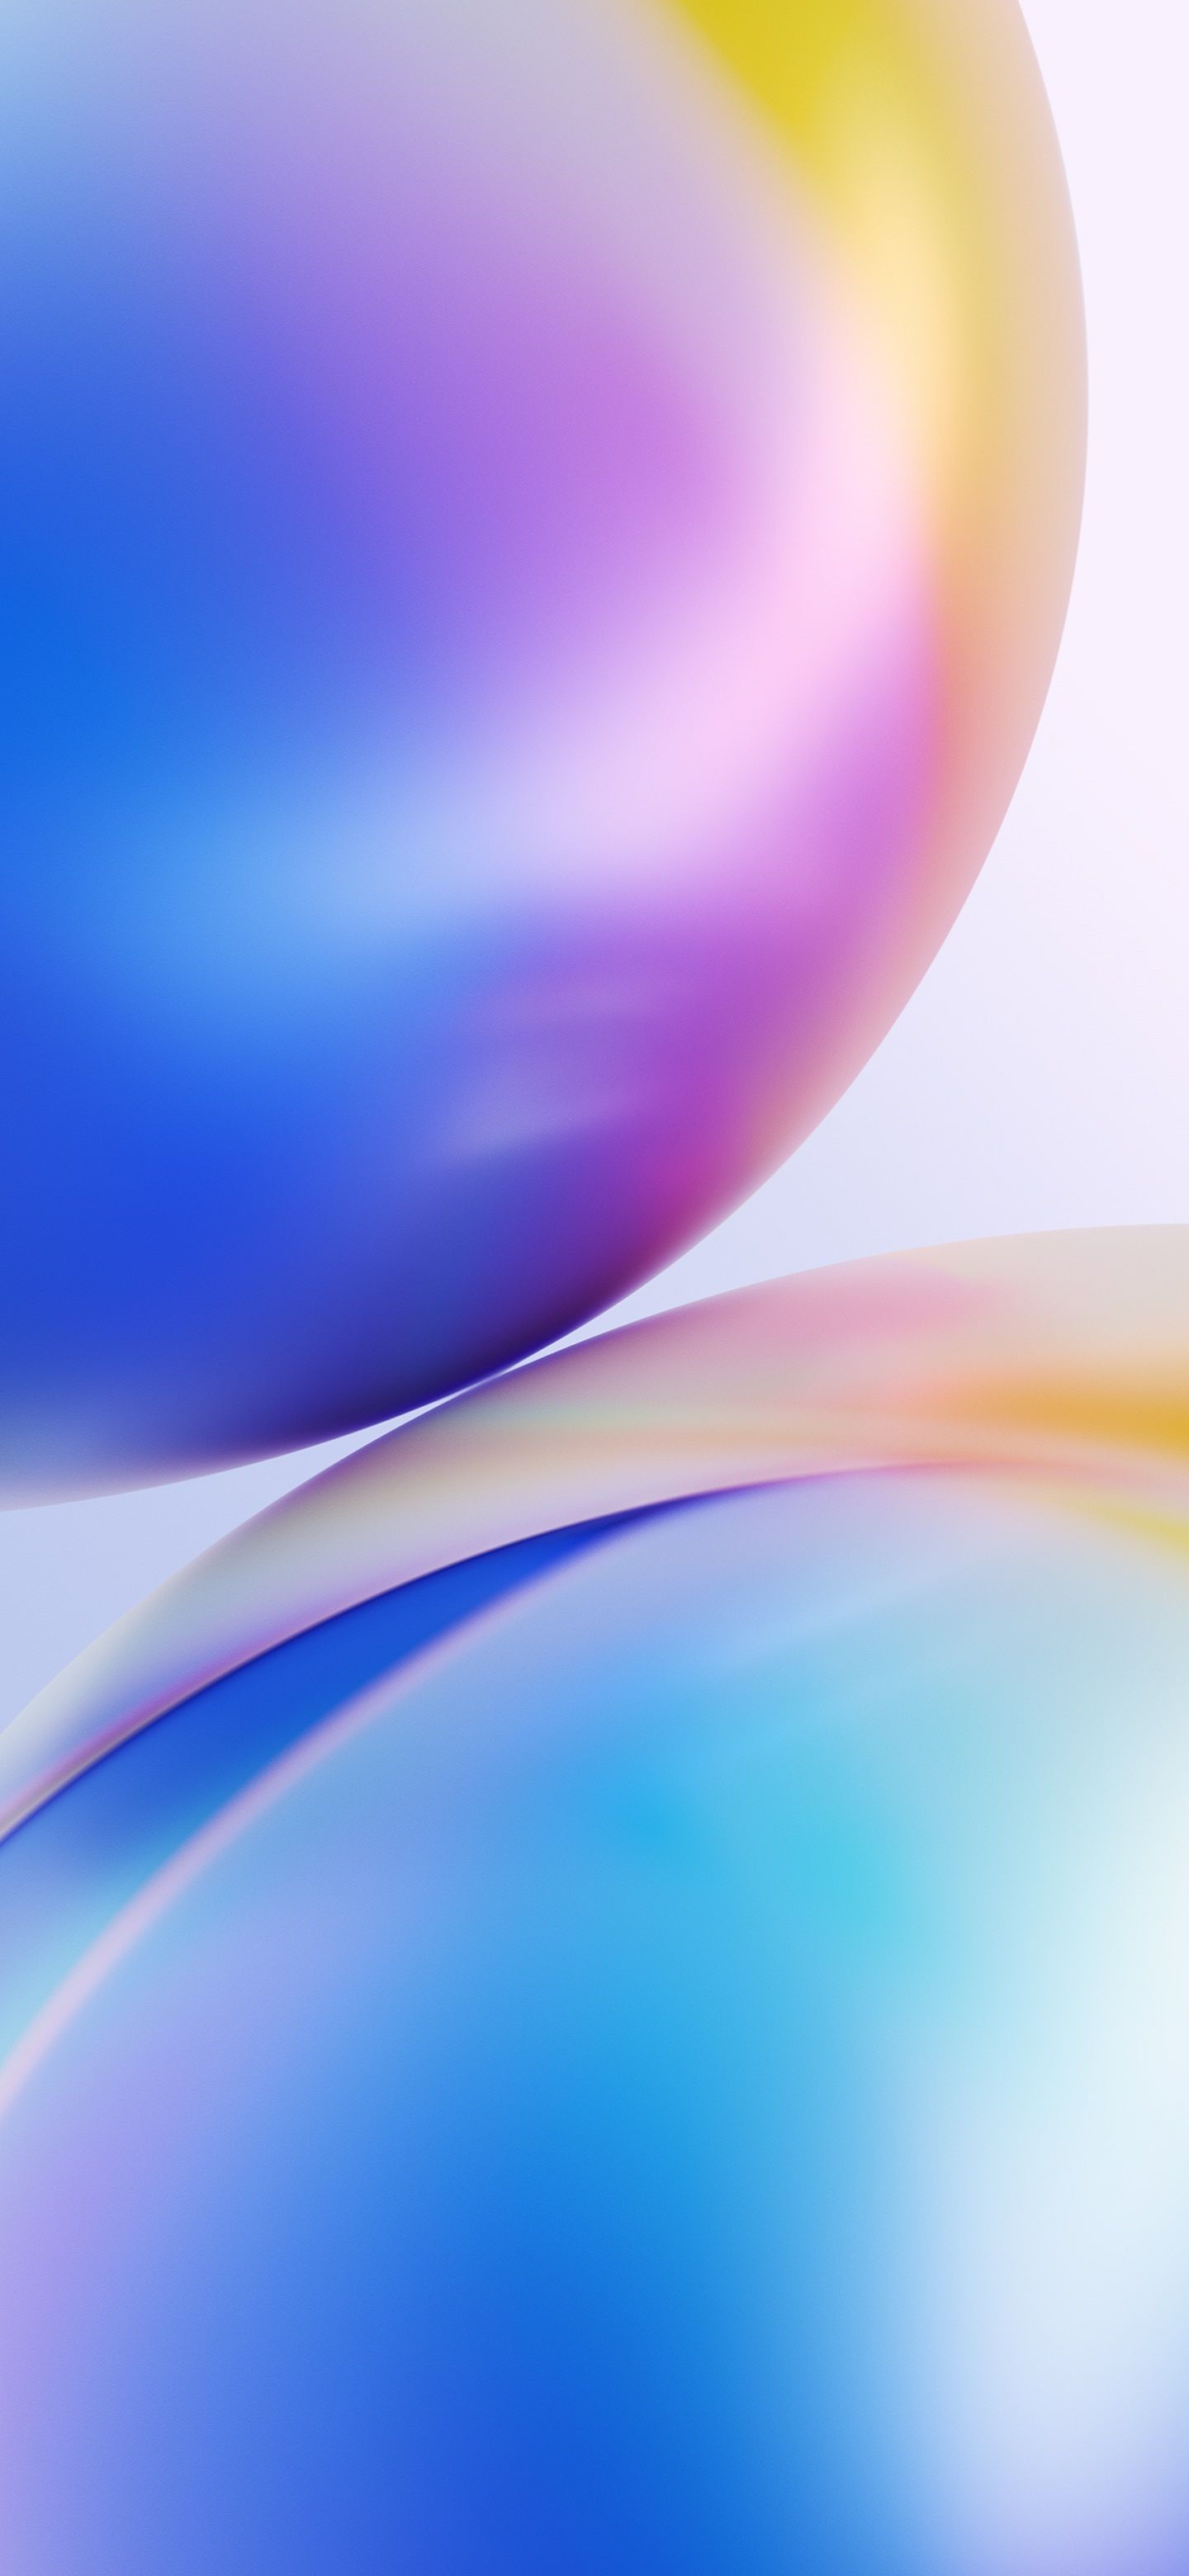 Oneplus 8 Wallpaper Note 20 P40 in 2020 Stock